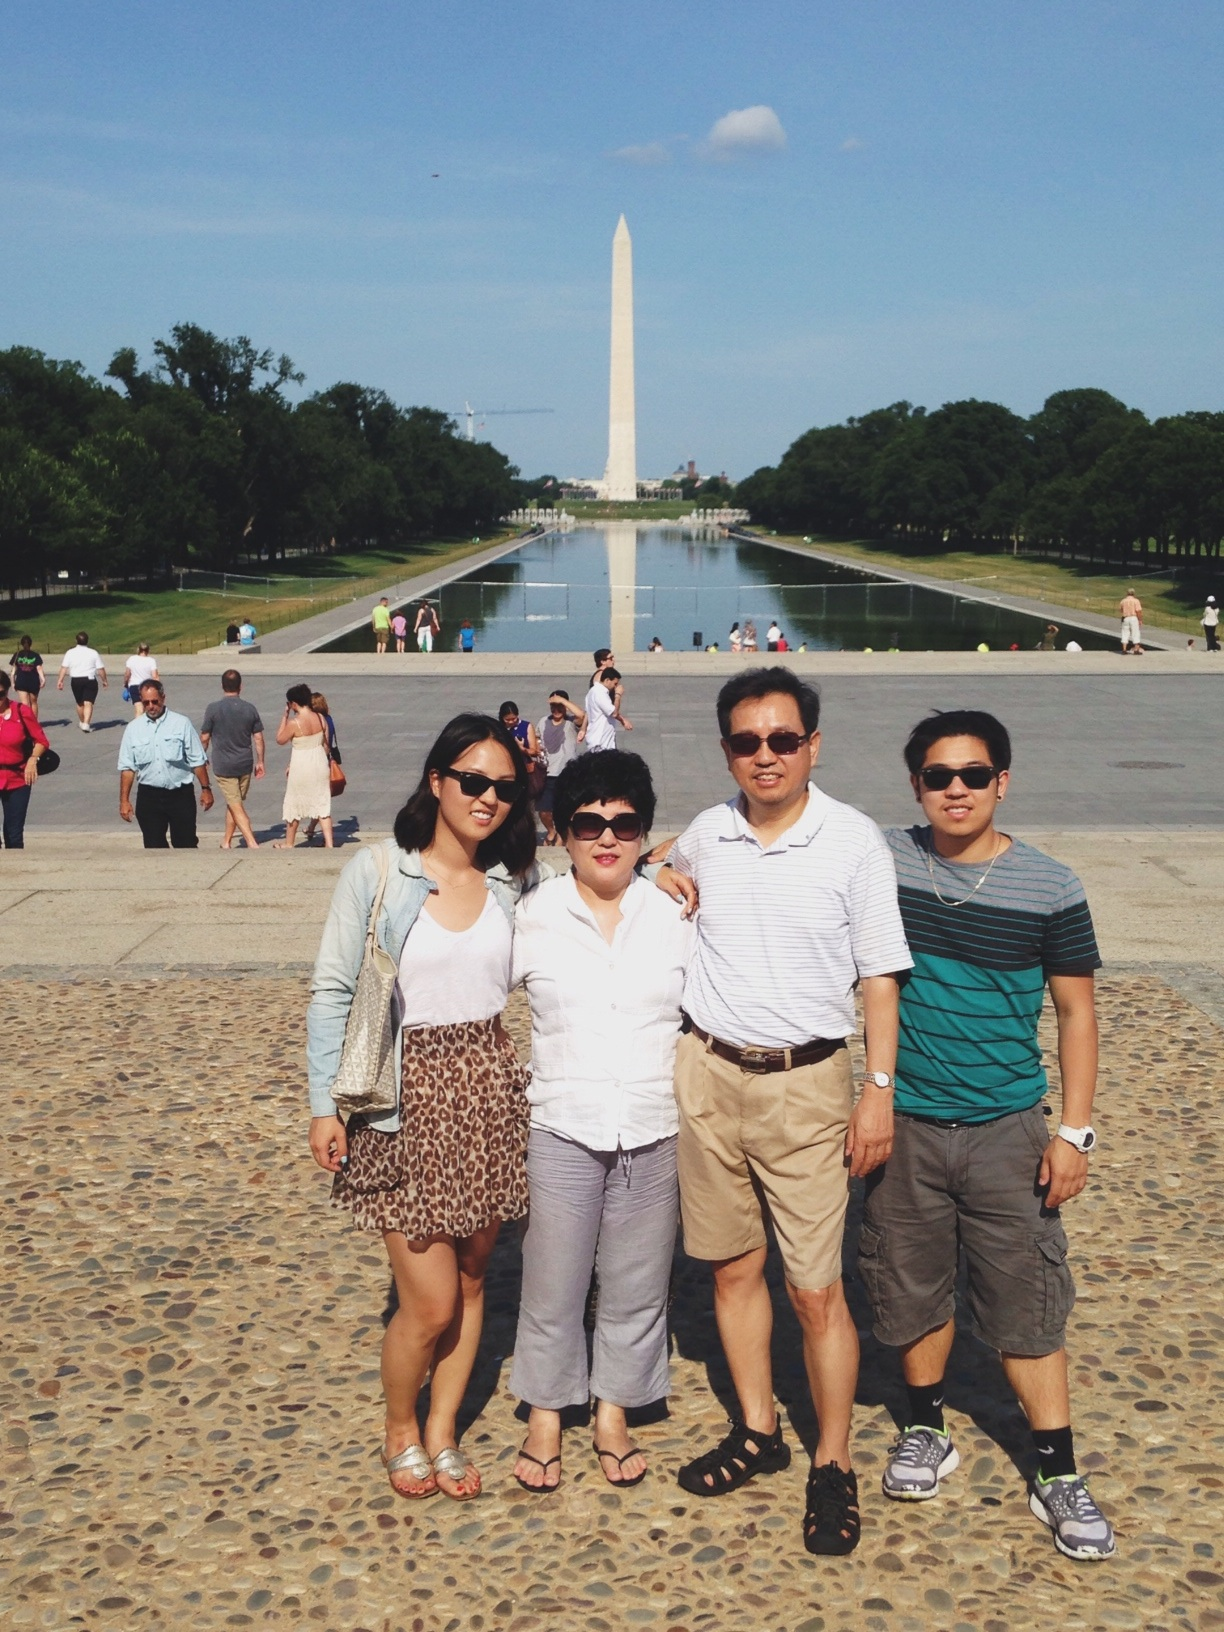 In front of the Washington Monument and Reflecting Pool